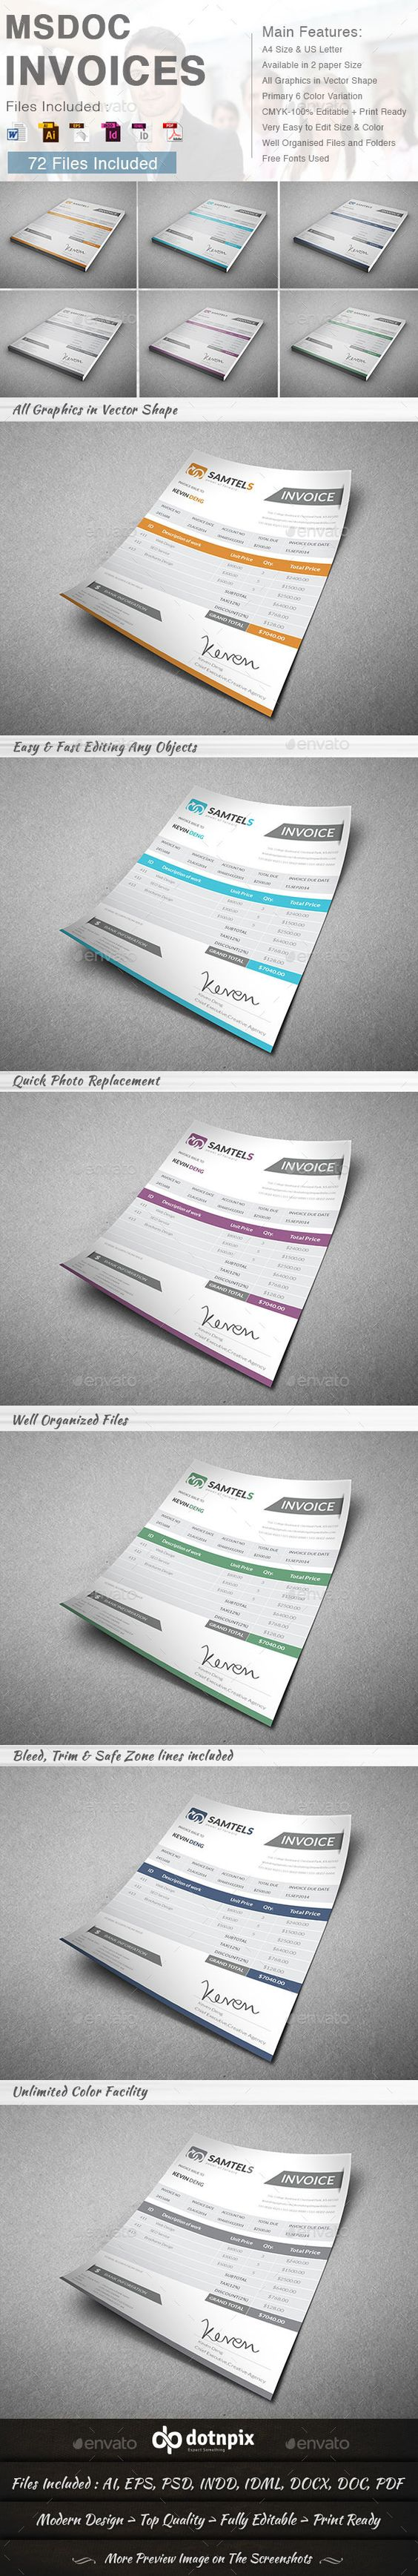 Msdoc Invoices Template | Download: http://graphicriver.net/item/msdoc-invoices/8792318?ref=ksioks